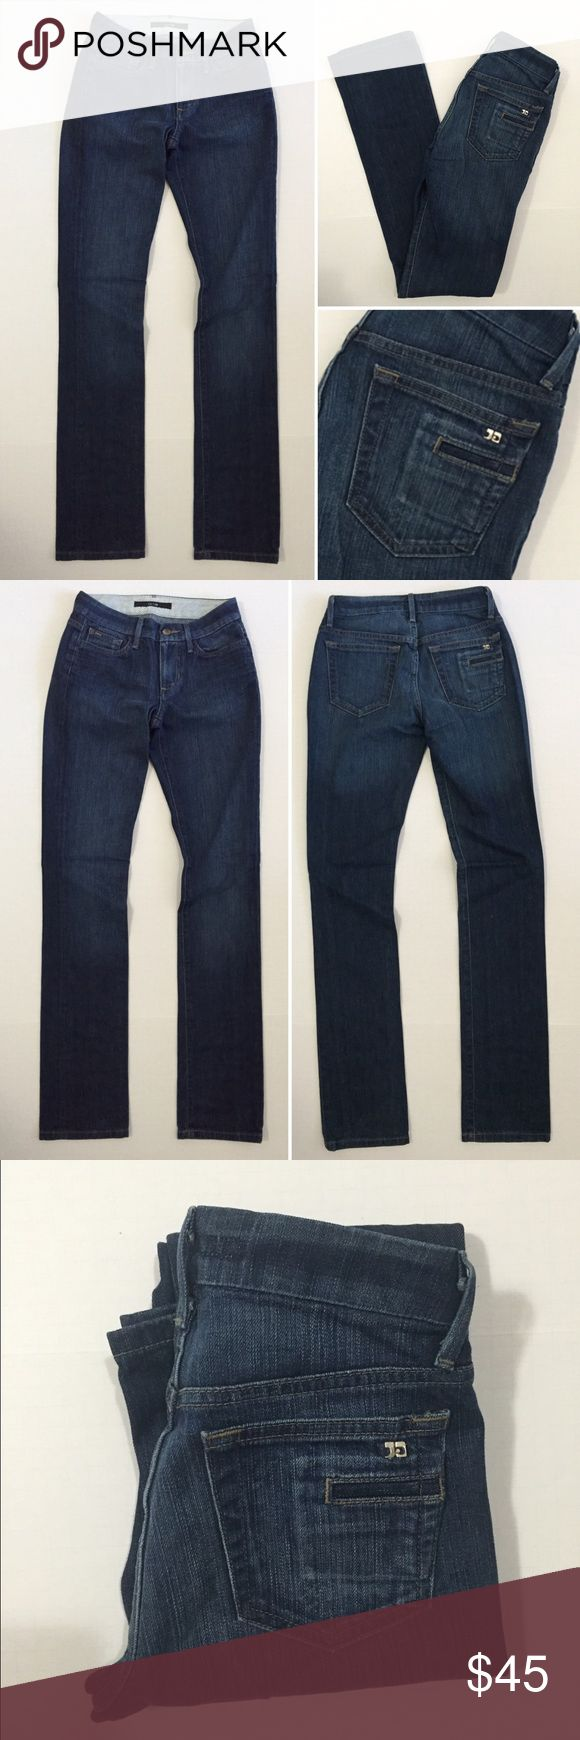 "[Joe's Jeans] women's high rise jeans sz24 [Joe's Jeans] women's high rise jeans sz24 •🆕listing •fit/style: ""High Rise Cigarette"" •good pre-owned condition •medium wash denim •length/inseam 33"" •5 pocket, zipper fly •material 98% cotton 2% elastane •offers welcomed using the offer feature or bundle for the best discount• Joe's Jeans Jeans"